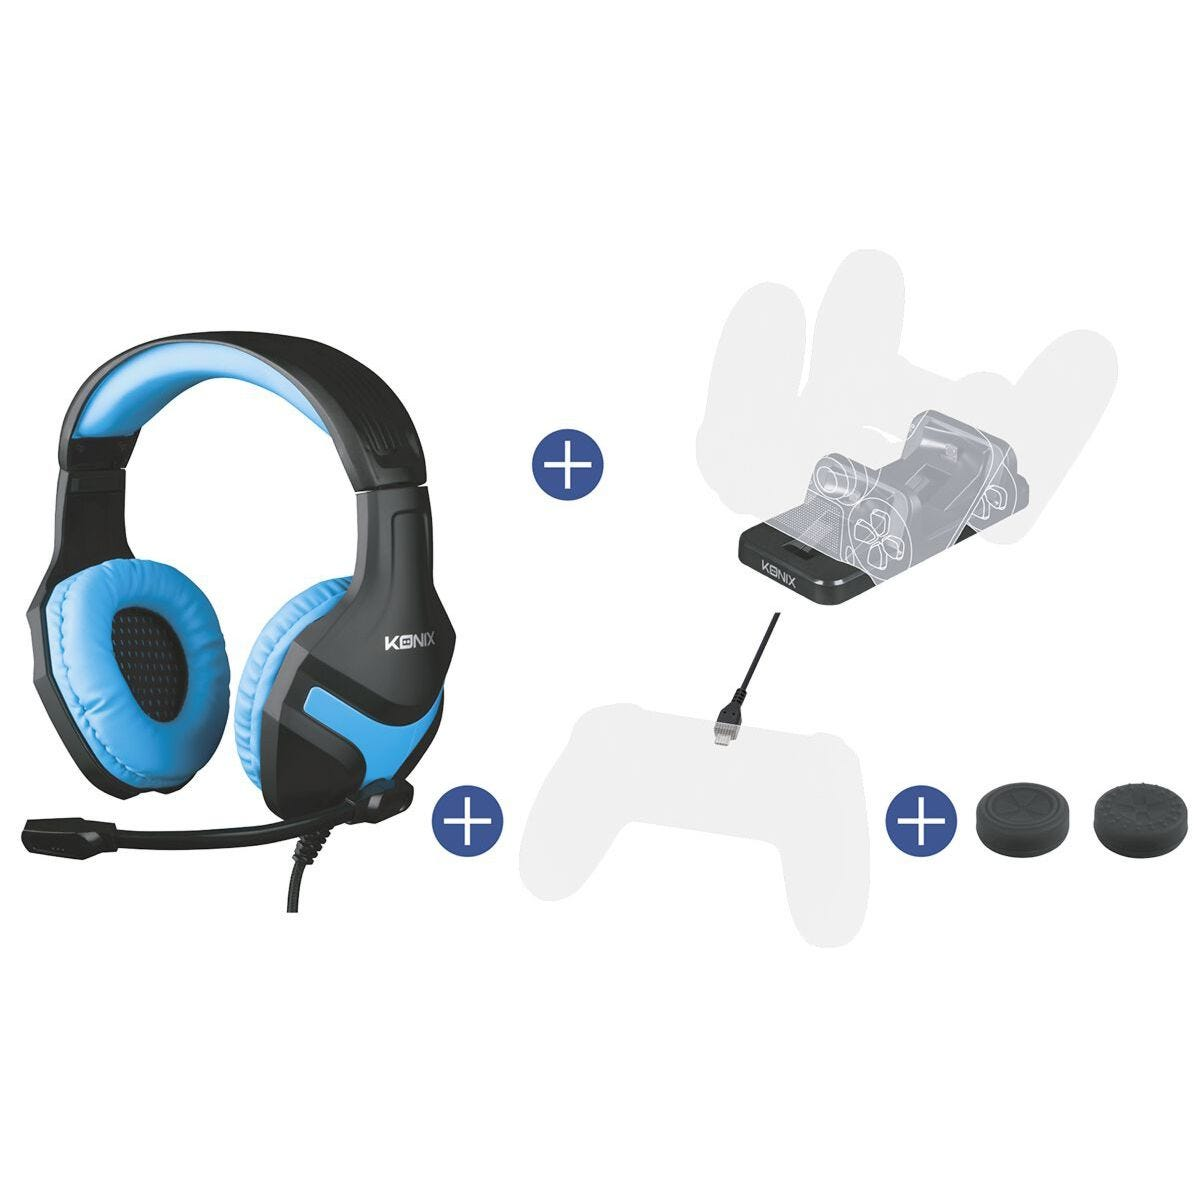 Konix Mythics Gamer Pack for PS4 - PS-400 Headset + Dual Charge Base + PS4 Pad Cable + 2 Thumb Grips